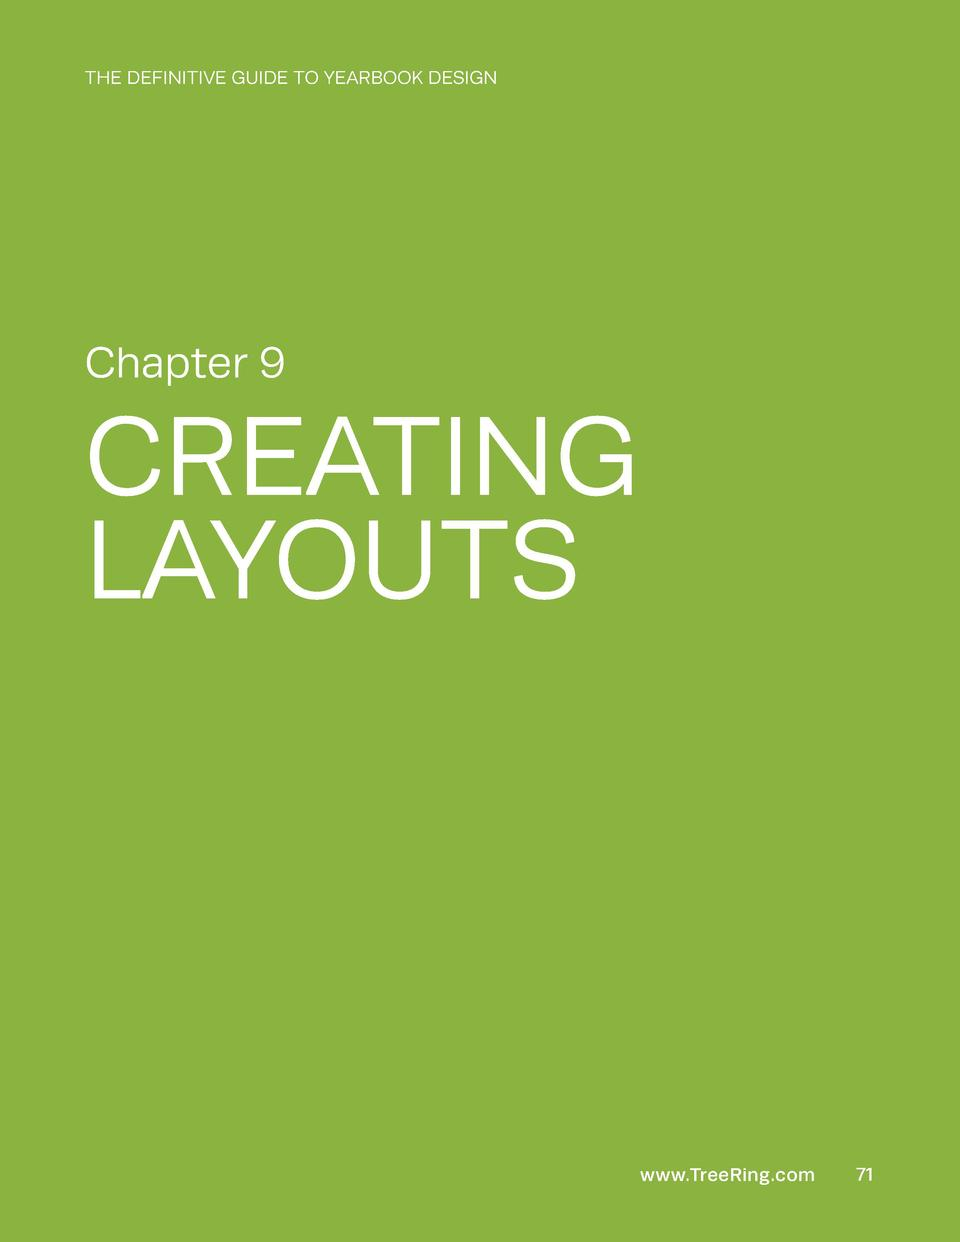 THE DEFINITIVE GUIDE TO YEARBOOK DESIGN  Chapter 9  CREATING LAYOUTS  www.TreeRing.com  71